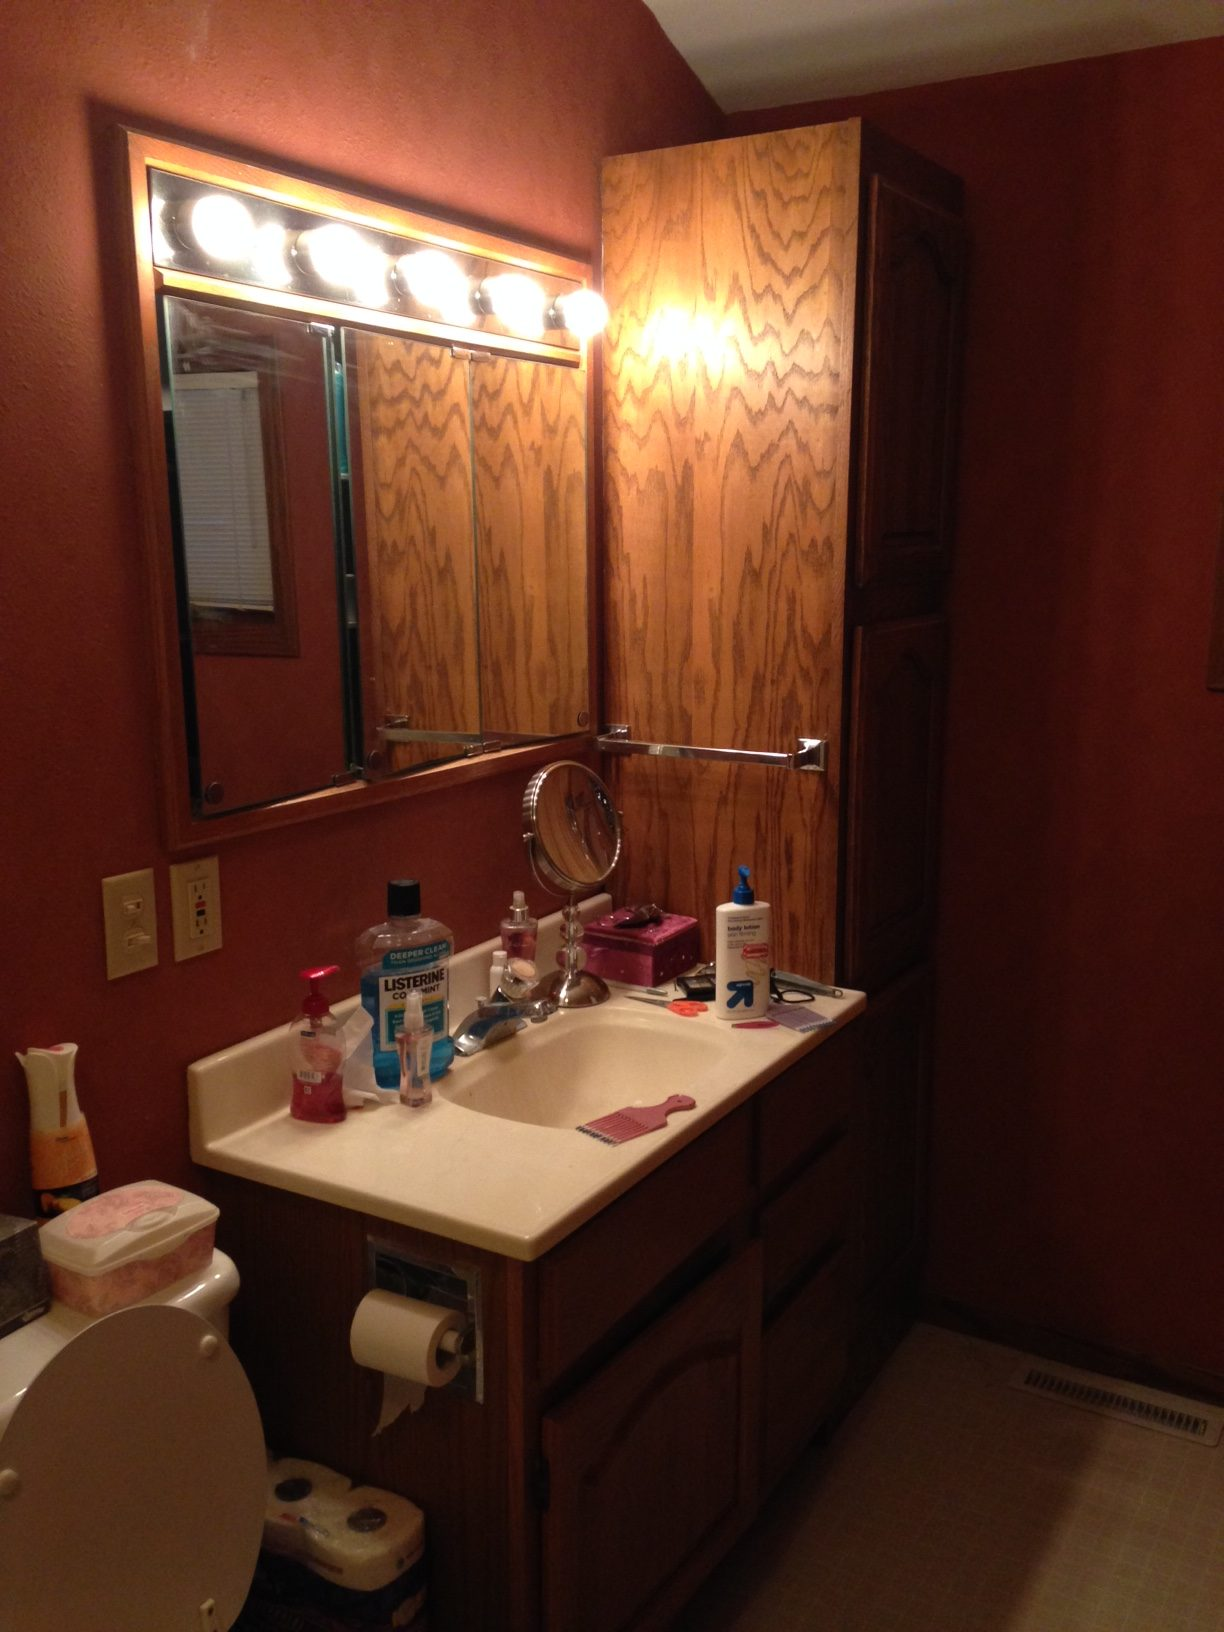 Master Bathroom Remodel - Before Pics